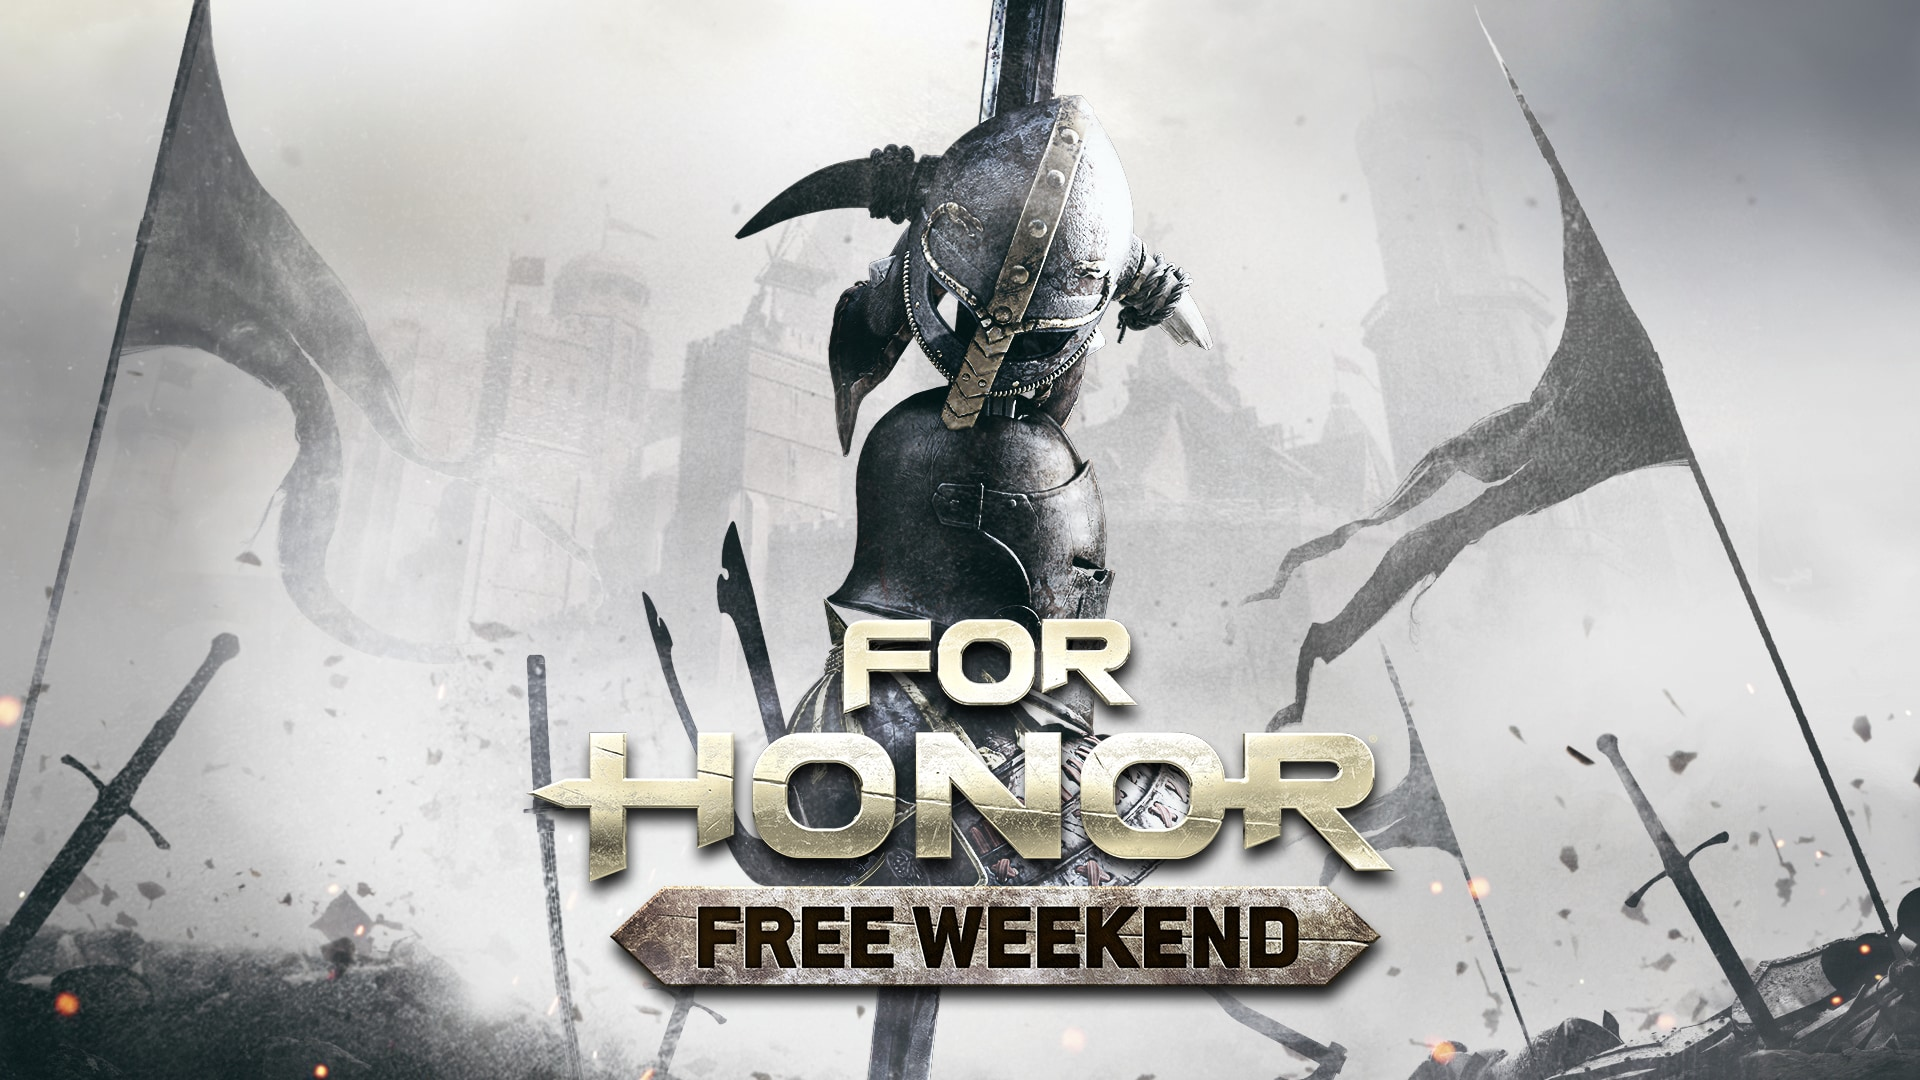 [2018-04-26] EMEA Free weekend - Thumb